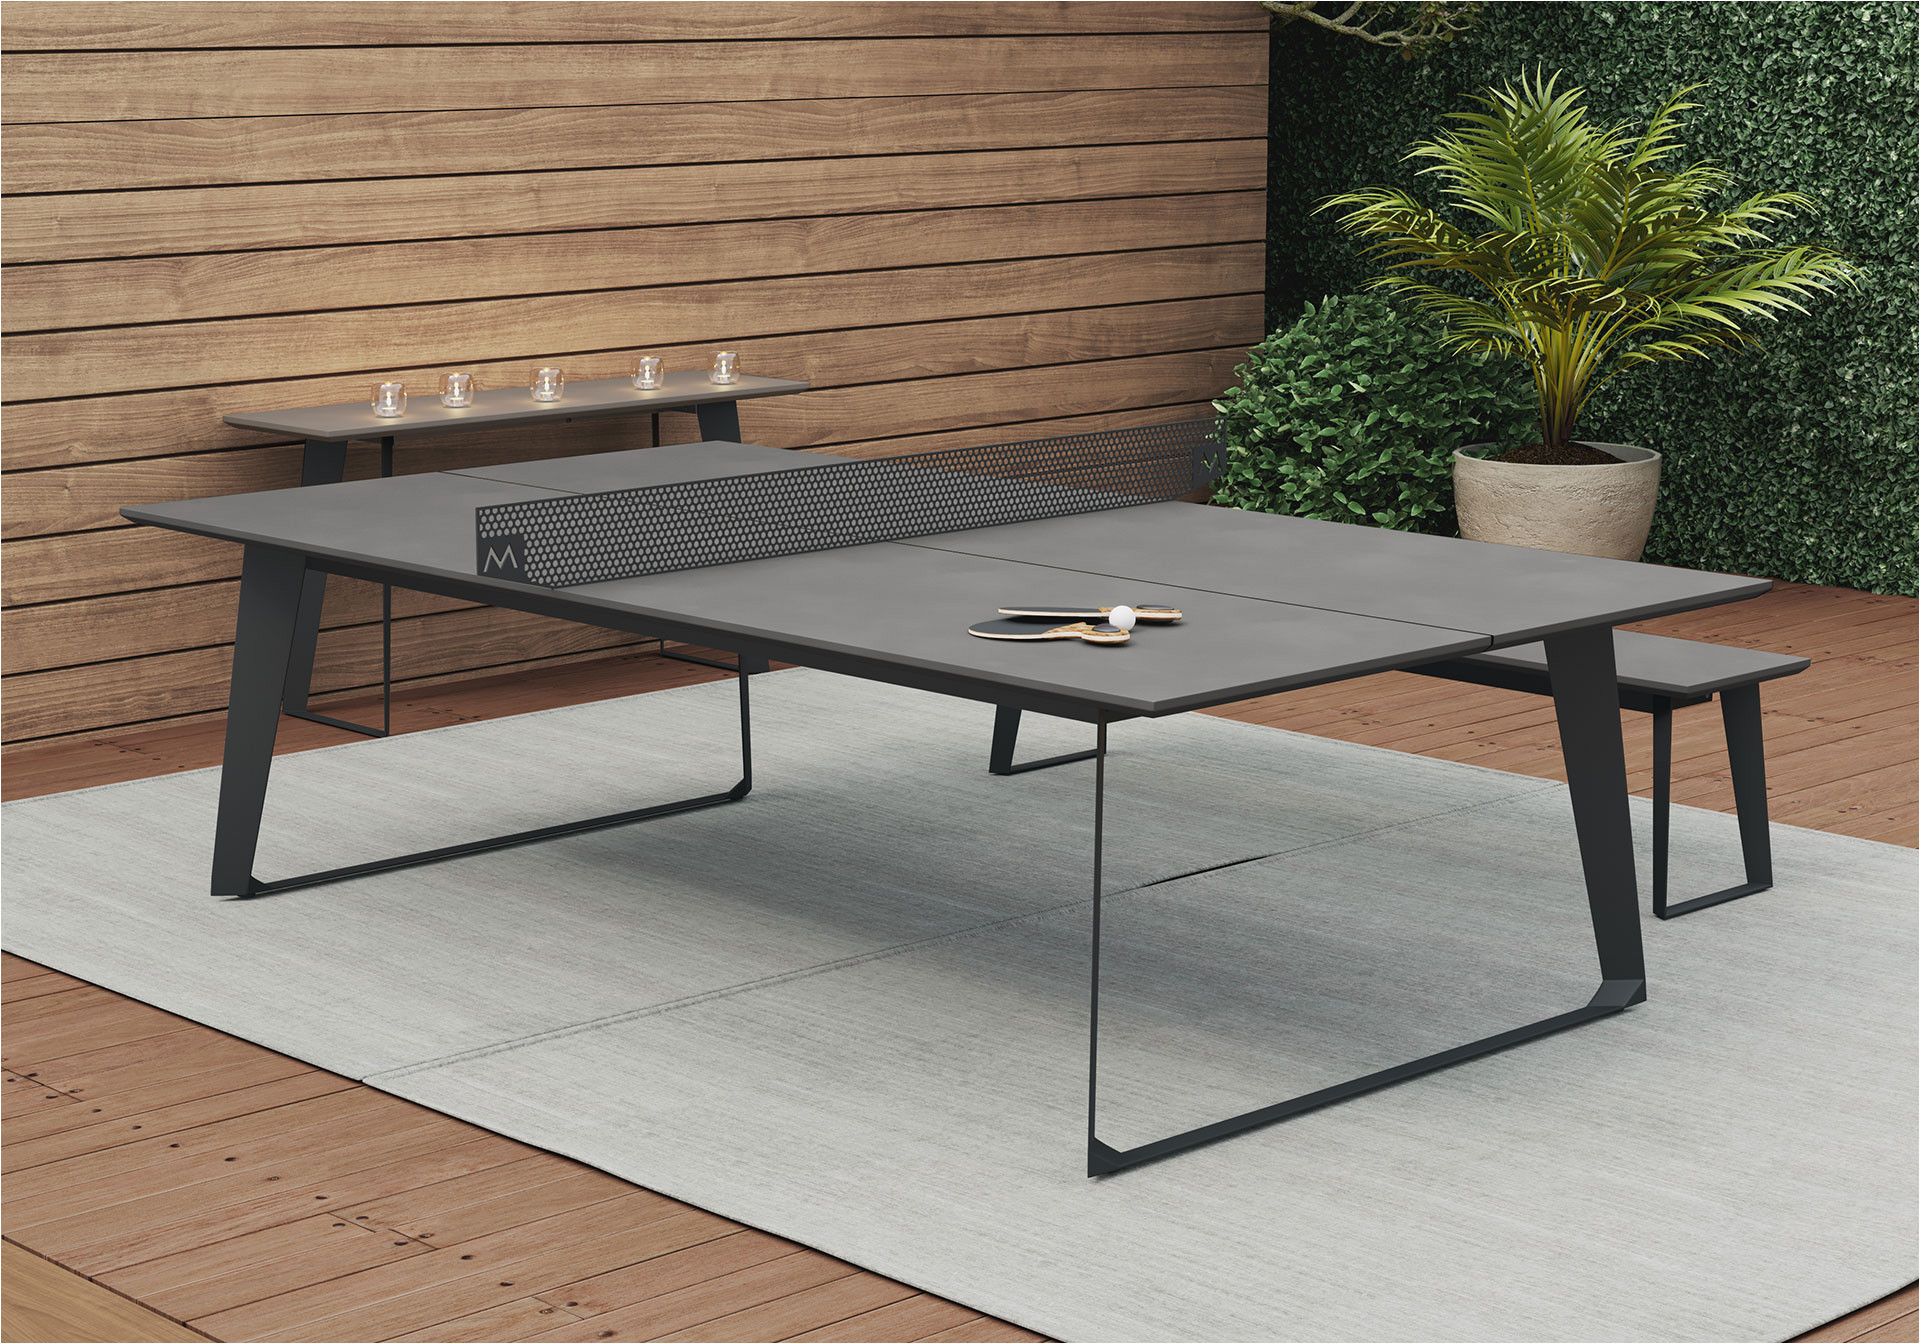 360a view modloft amsterdam outdoor ping pong table de ght pptblc od official from patio furniture stores in des moines ia